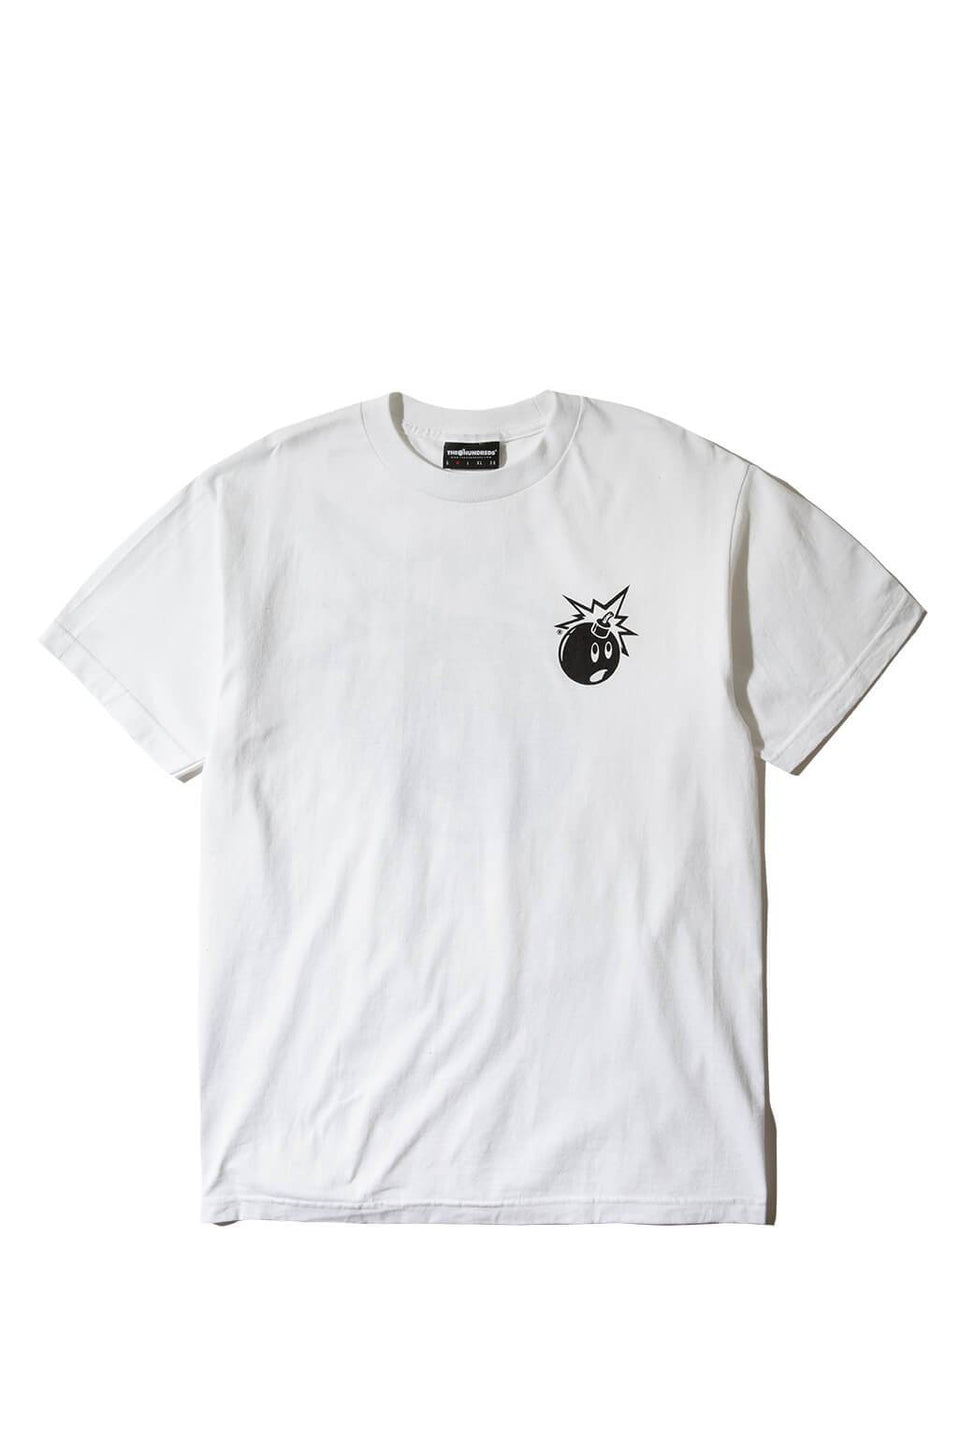 Forever Simple Adam T-Shirt White Front